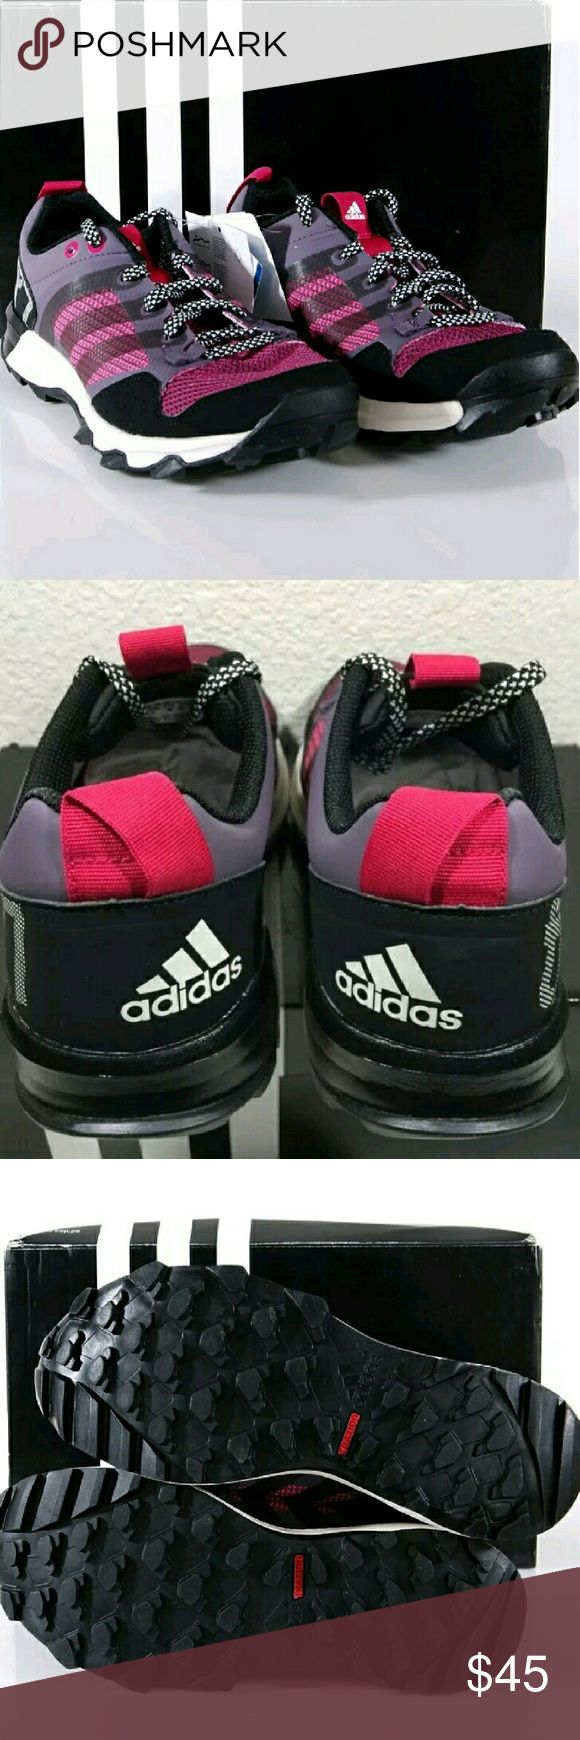 New Adidas Trail Running Shoes sz 8 New without box. I purchased the wrong size. These are ash purple and hot pink. Adidas Shoes Athletic Shoes